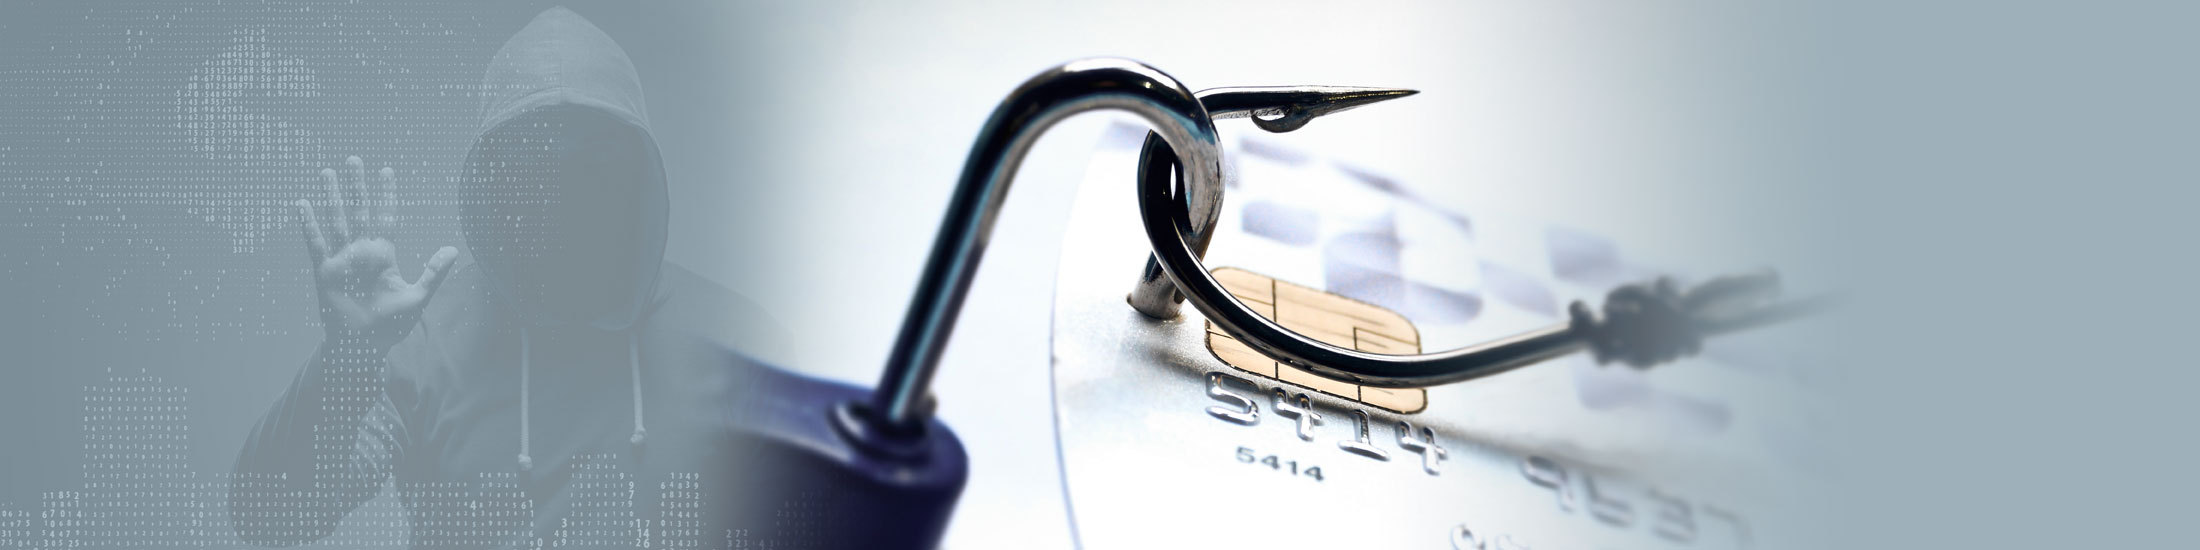 Pandemic Phishing Scams a Top Conduit for Digital Fraud